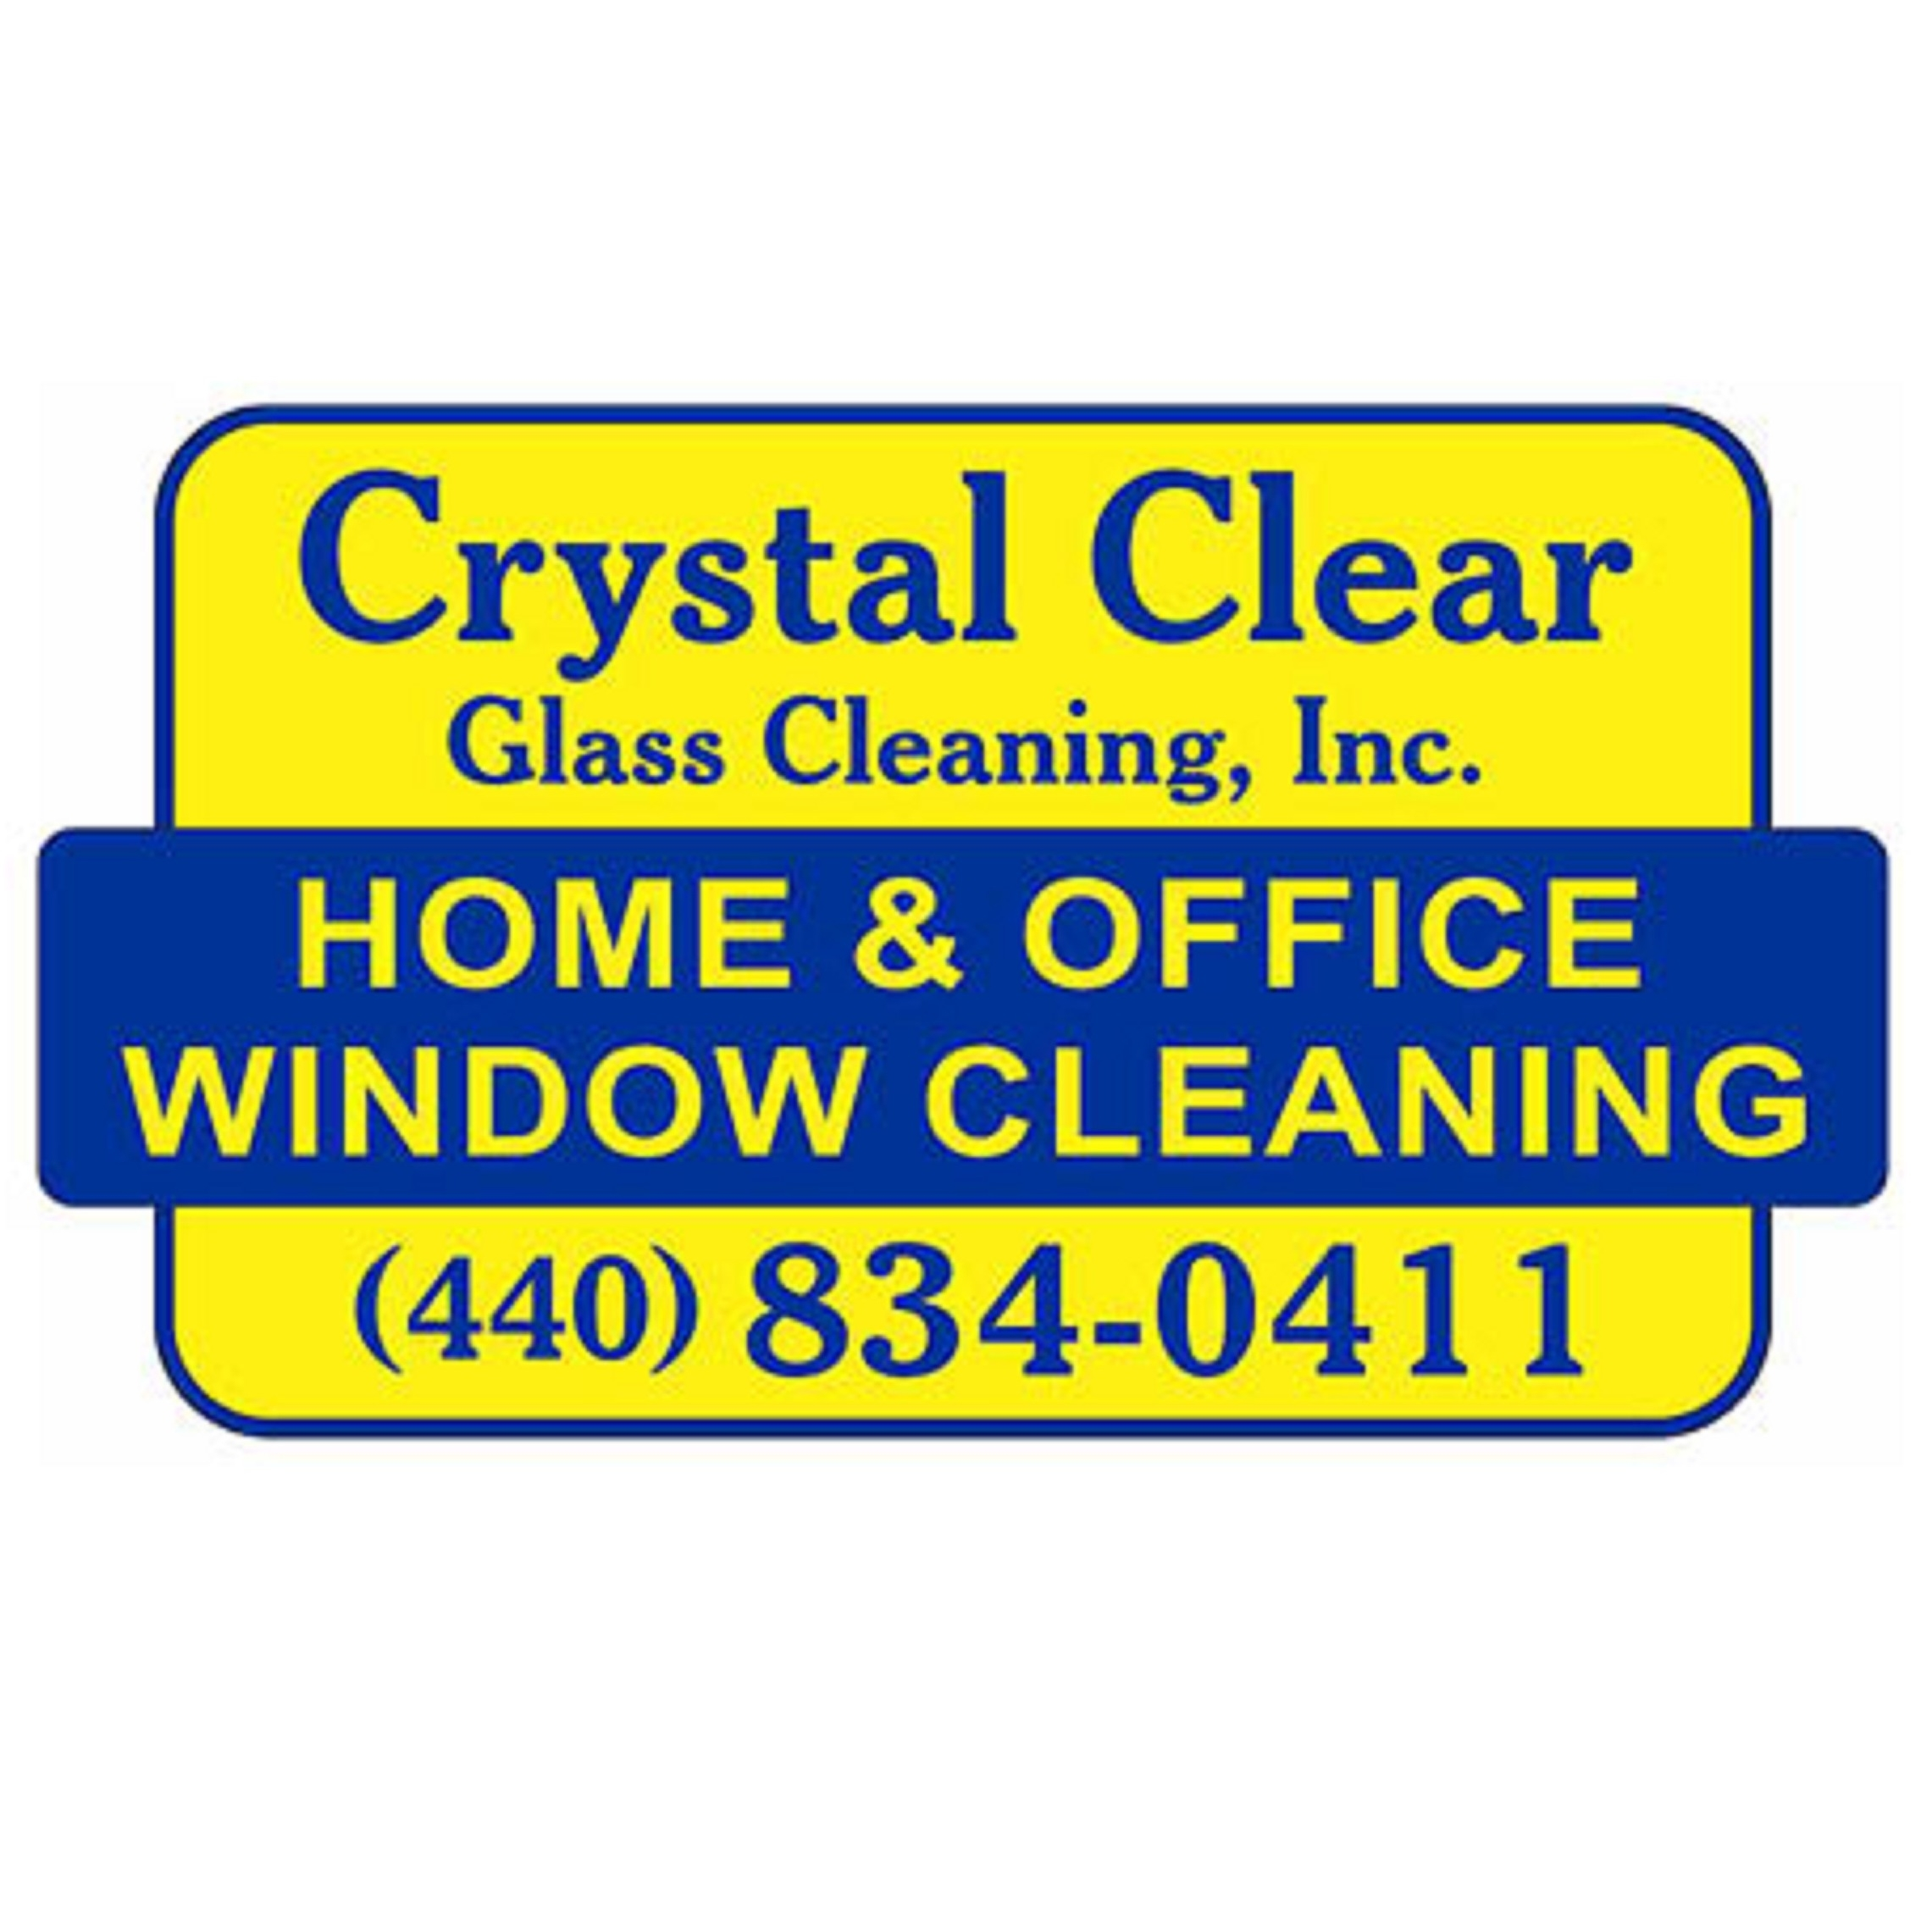 Crystal Clear Glass Cleaning, Inc.